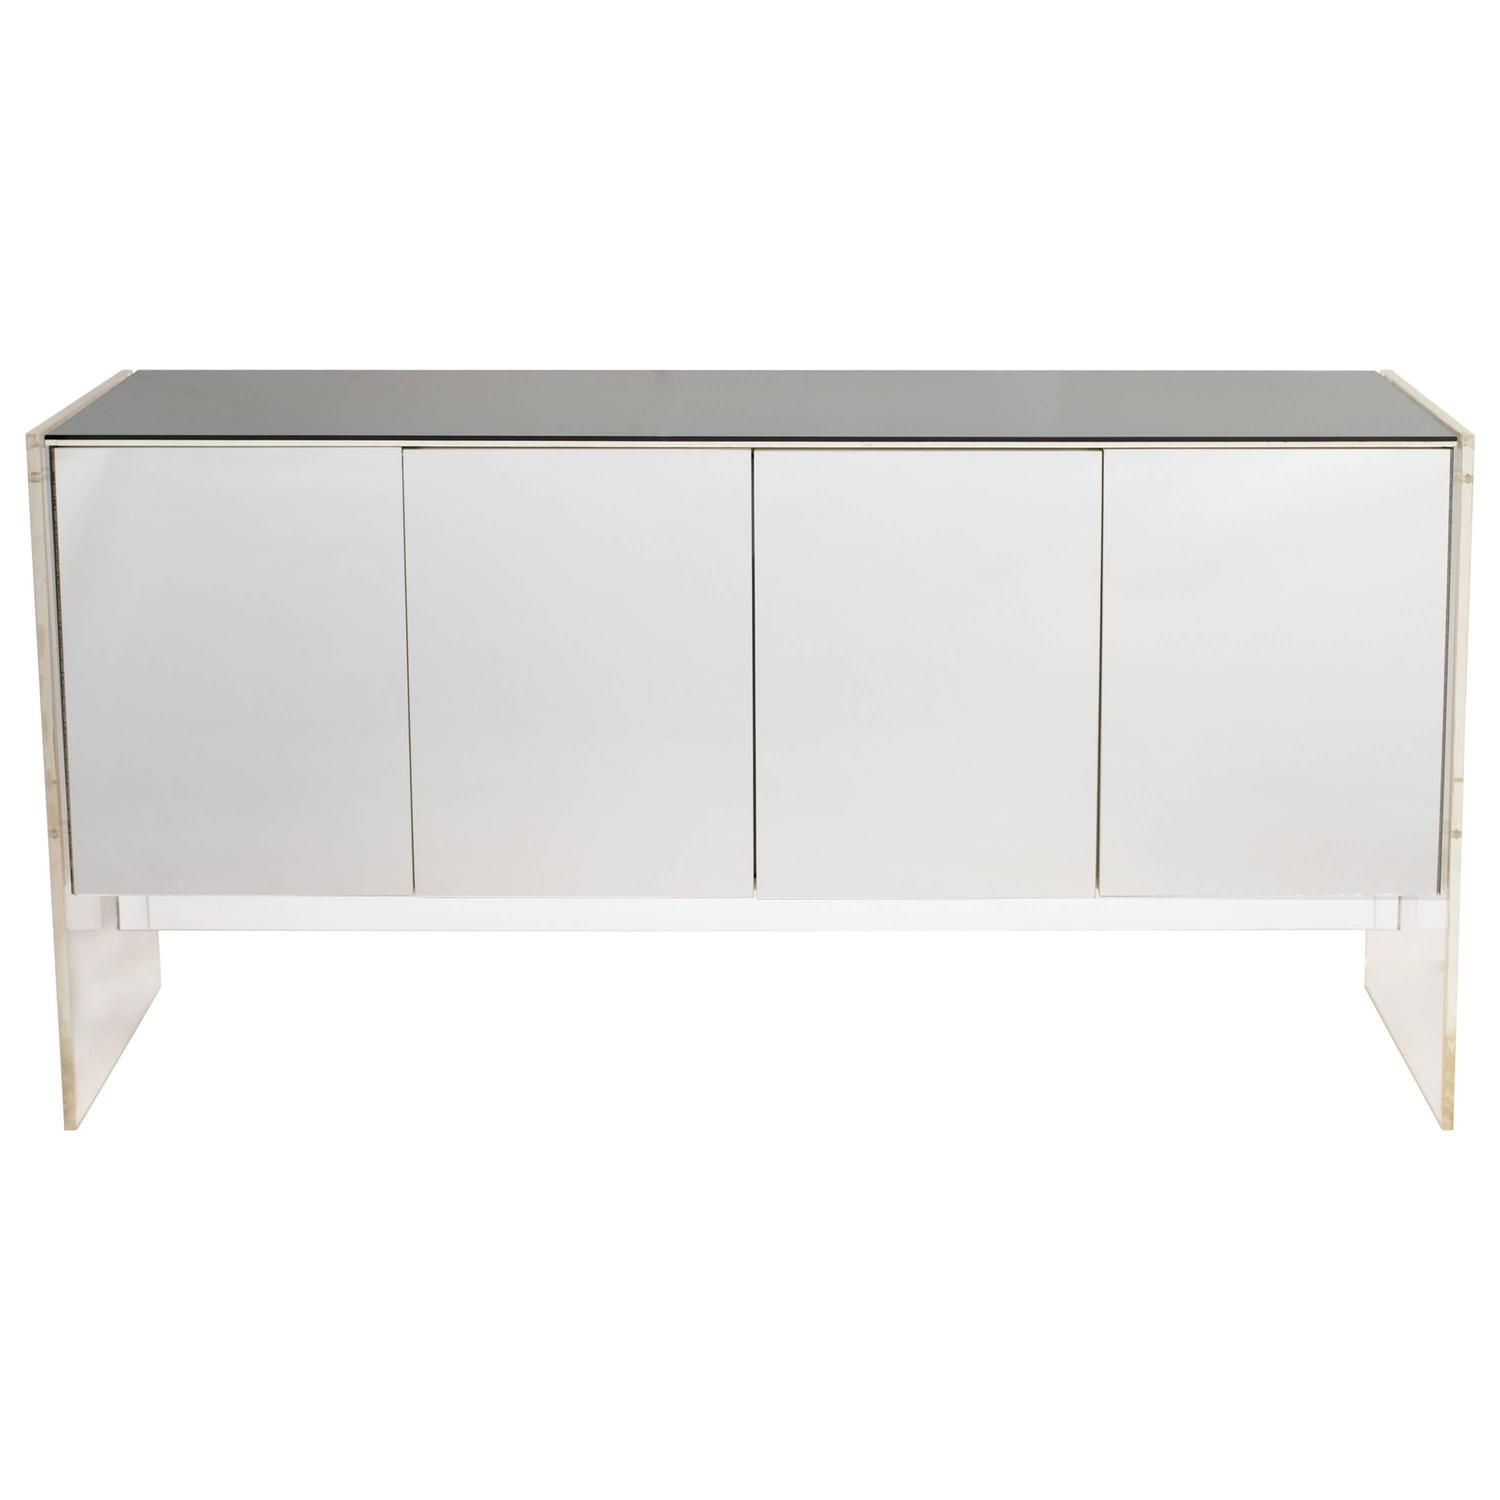 Modern White Credenza Mid Century Modern Mirrored And Lucite Credenza By Ello At 1stdibs